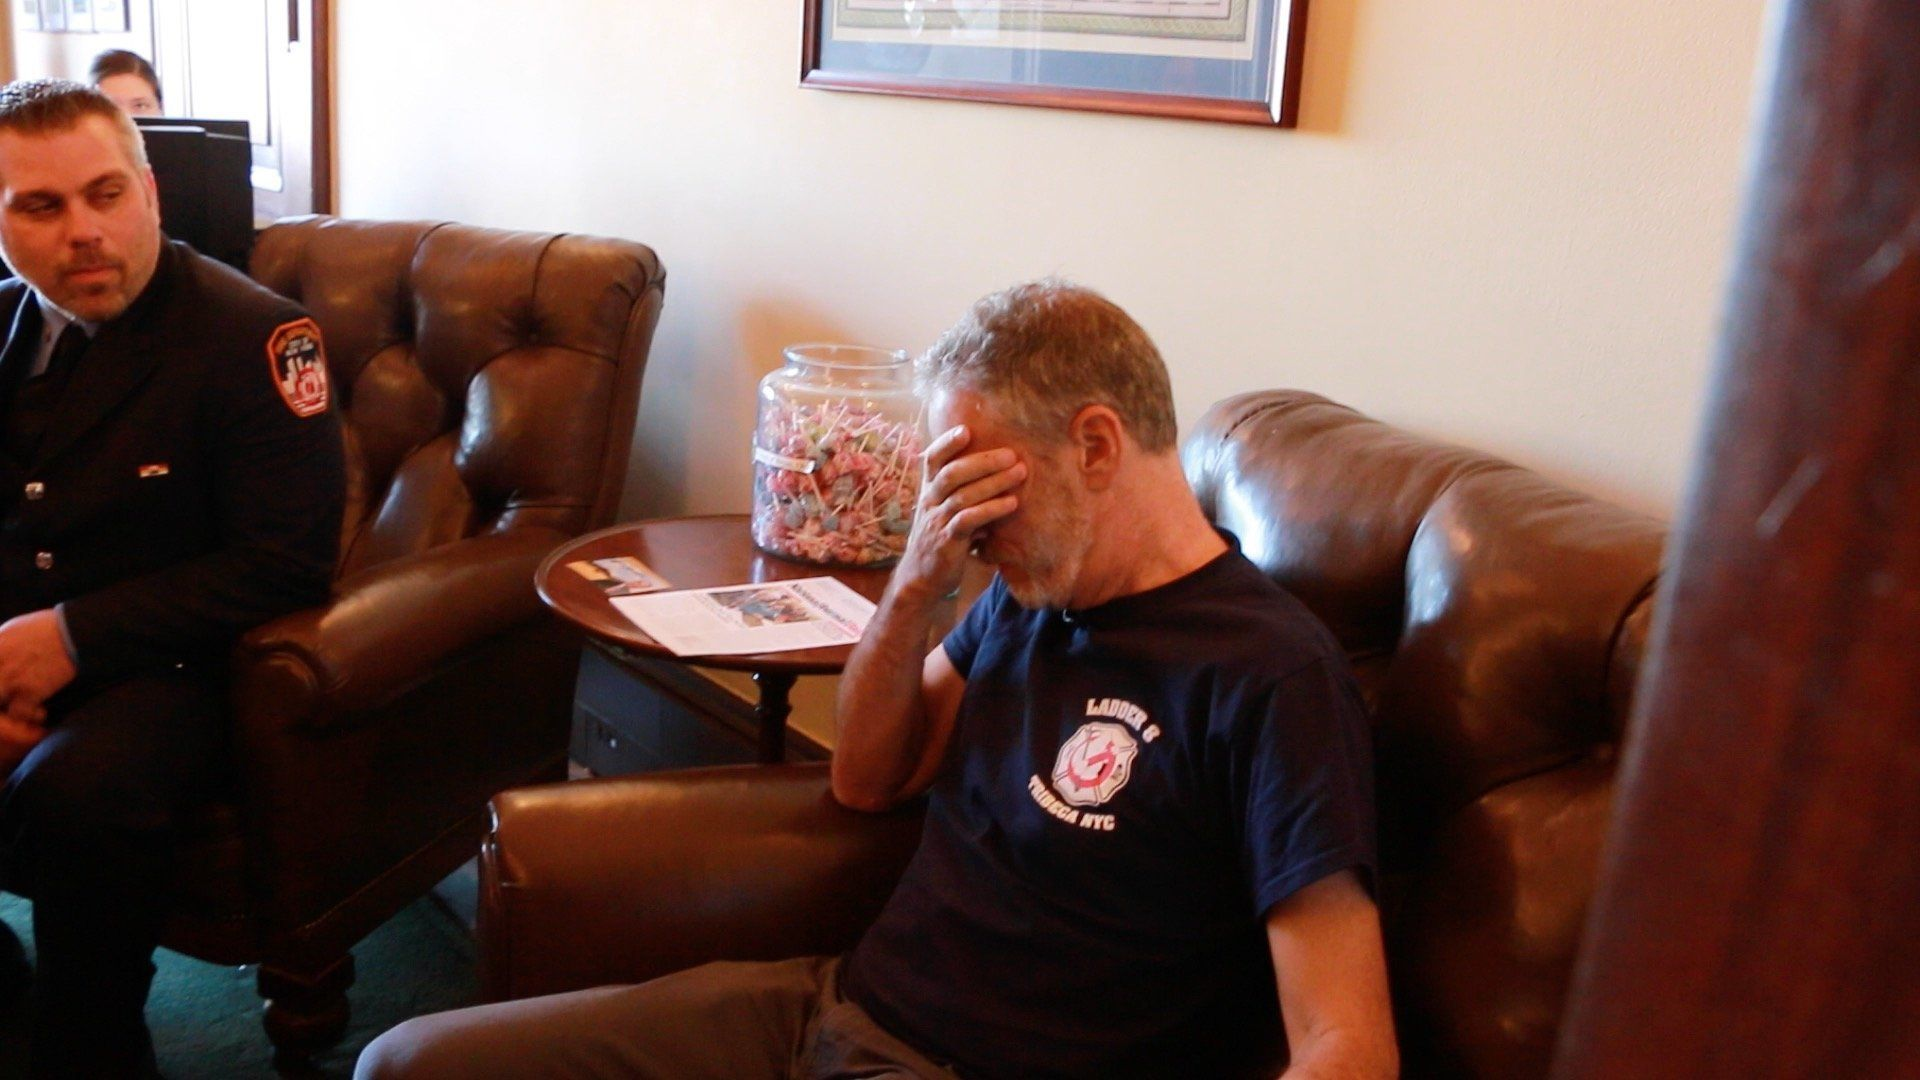 Jon Stewart bows his head and covers his eyes in a U.S. Senate office.